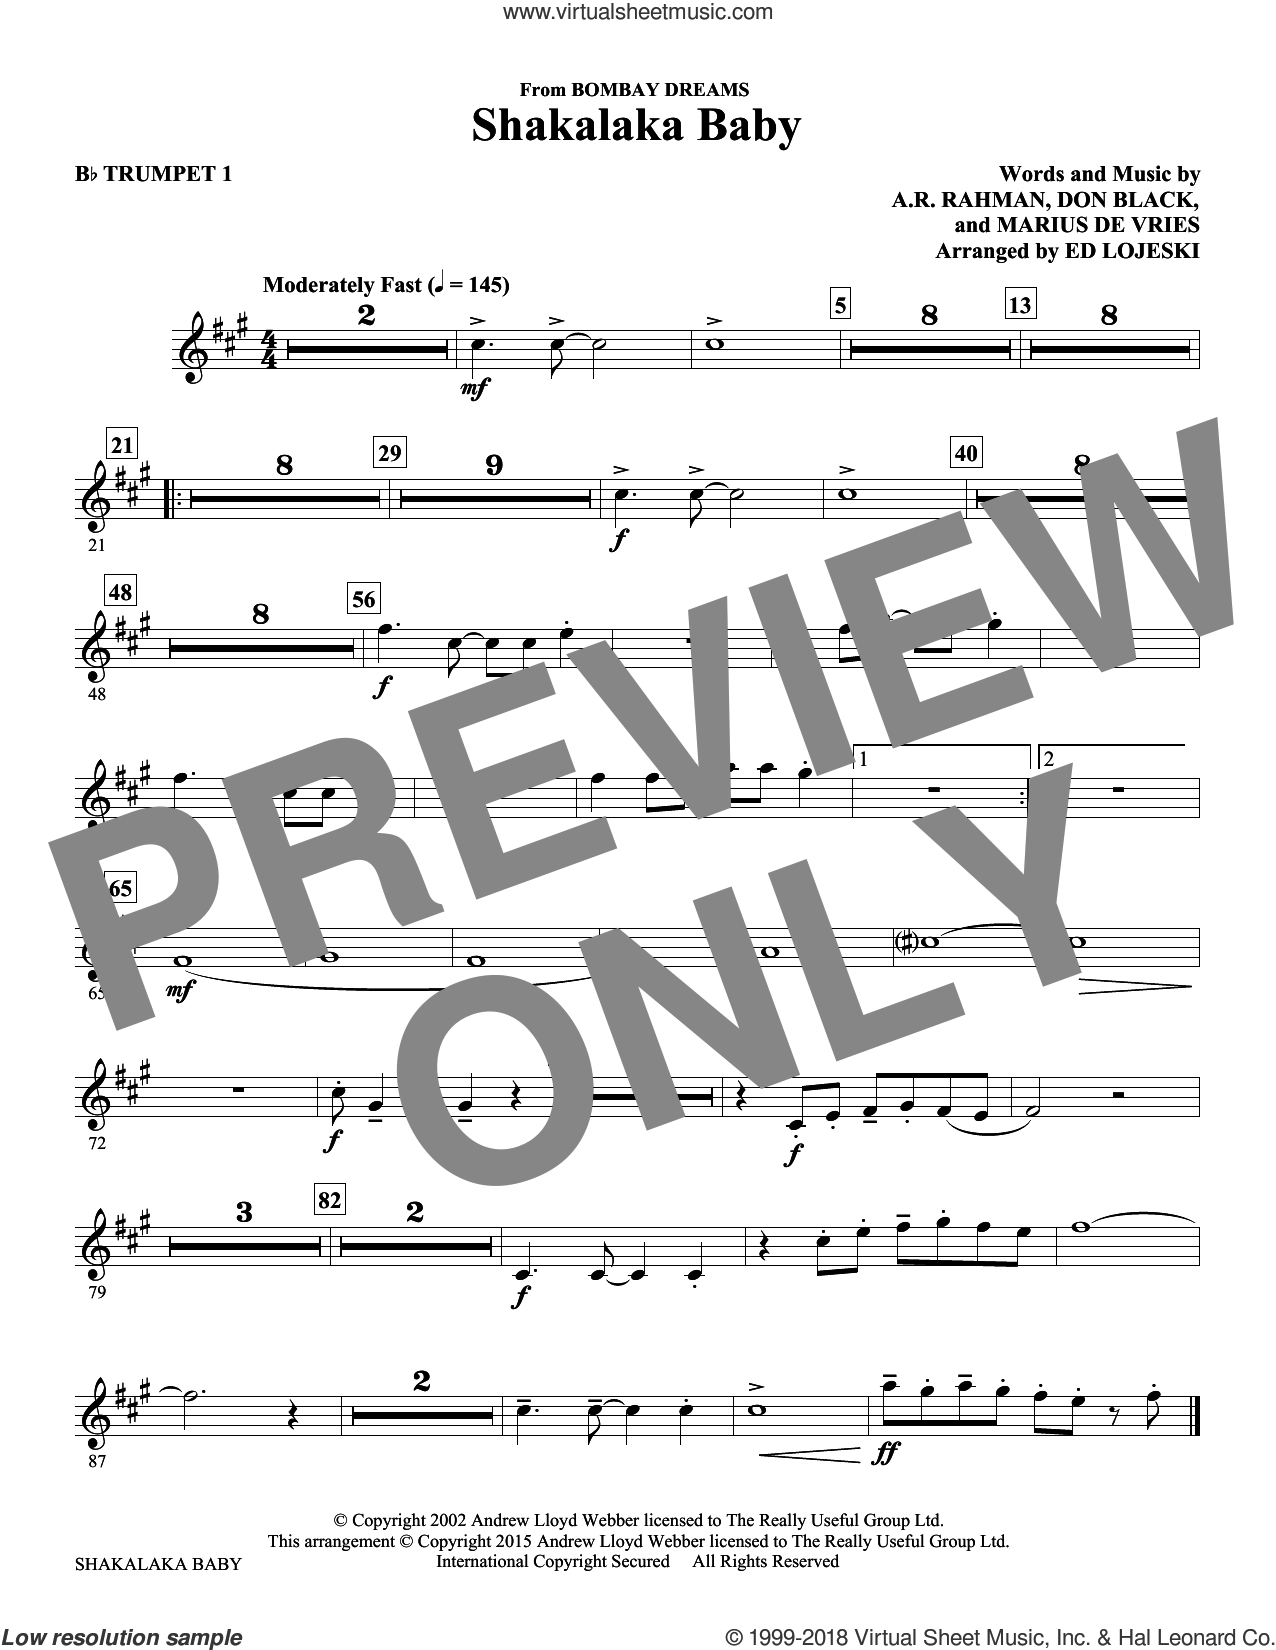 Shakalaka Baby (from Bombay Dreams) (complete set of parts) sheet music for orchestra/band by Ed Lojeski, A.R. Rahman, Don Black and Marius De Vries, intermediate skill level